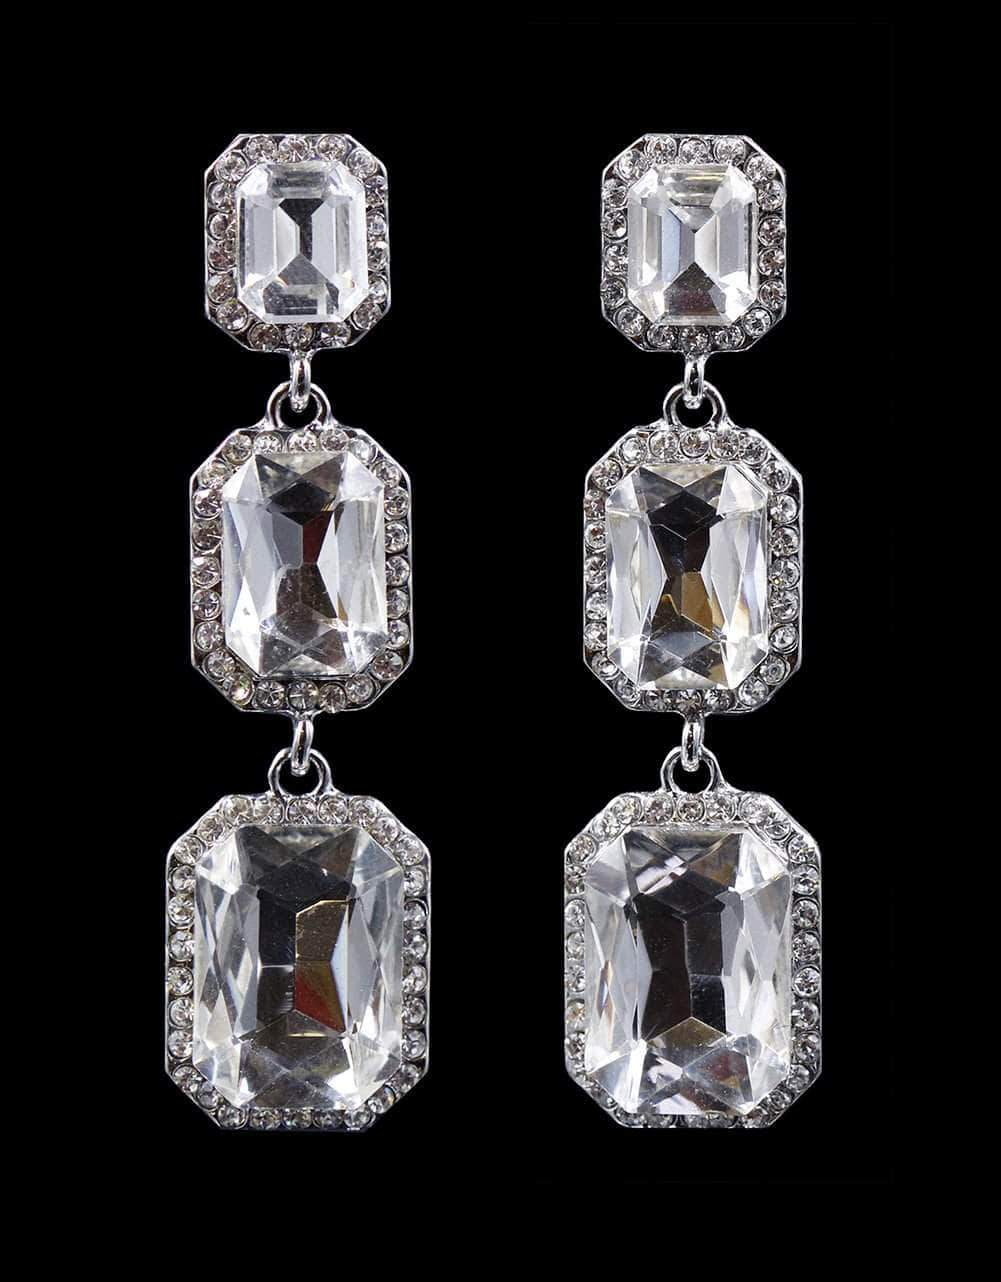 Earrings - Dangle #16718 - Triple Octagon Rhinestone Drop Earrings